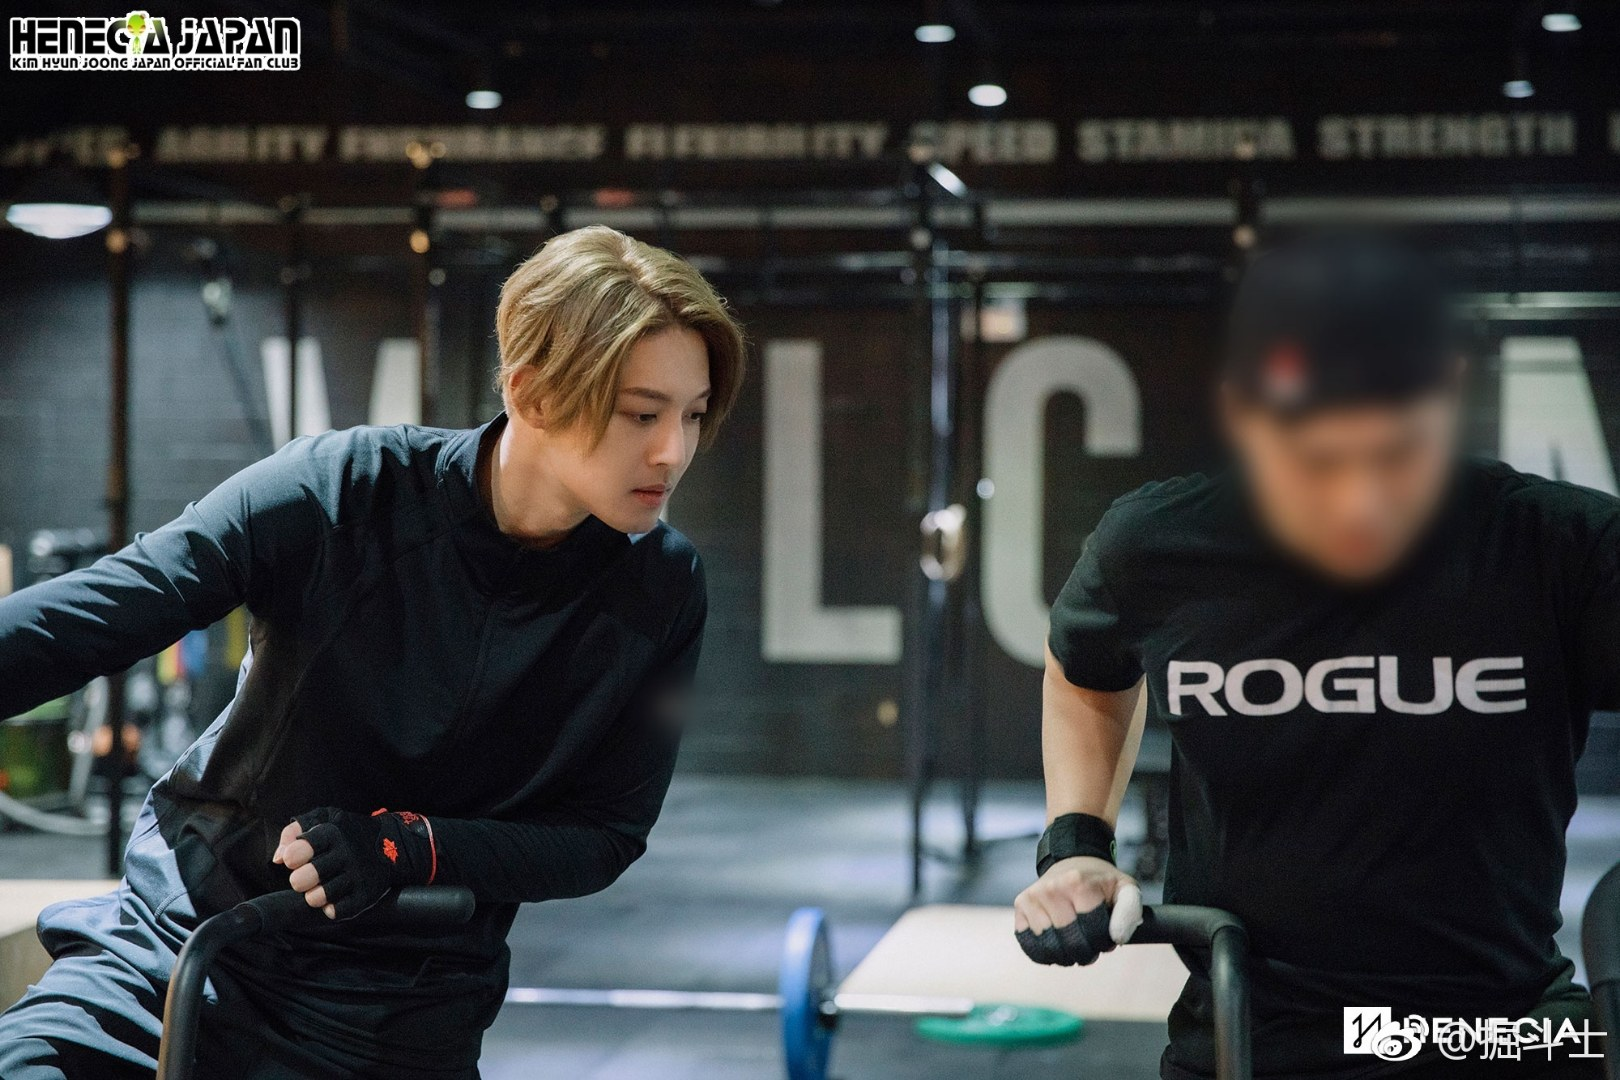 Henecia Japan official website staff blog 2018.06.05